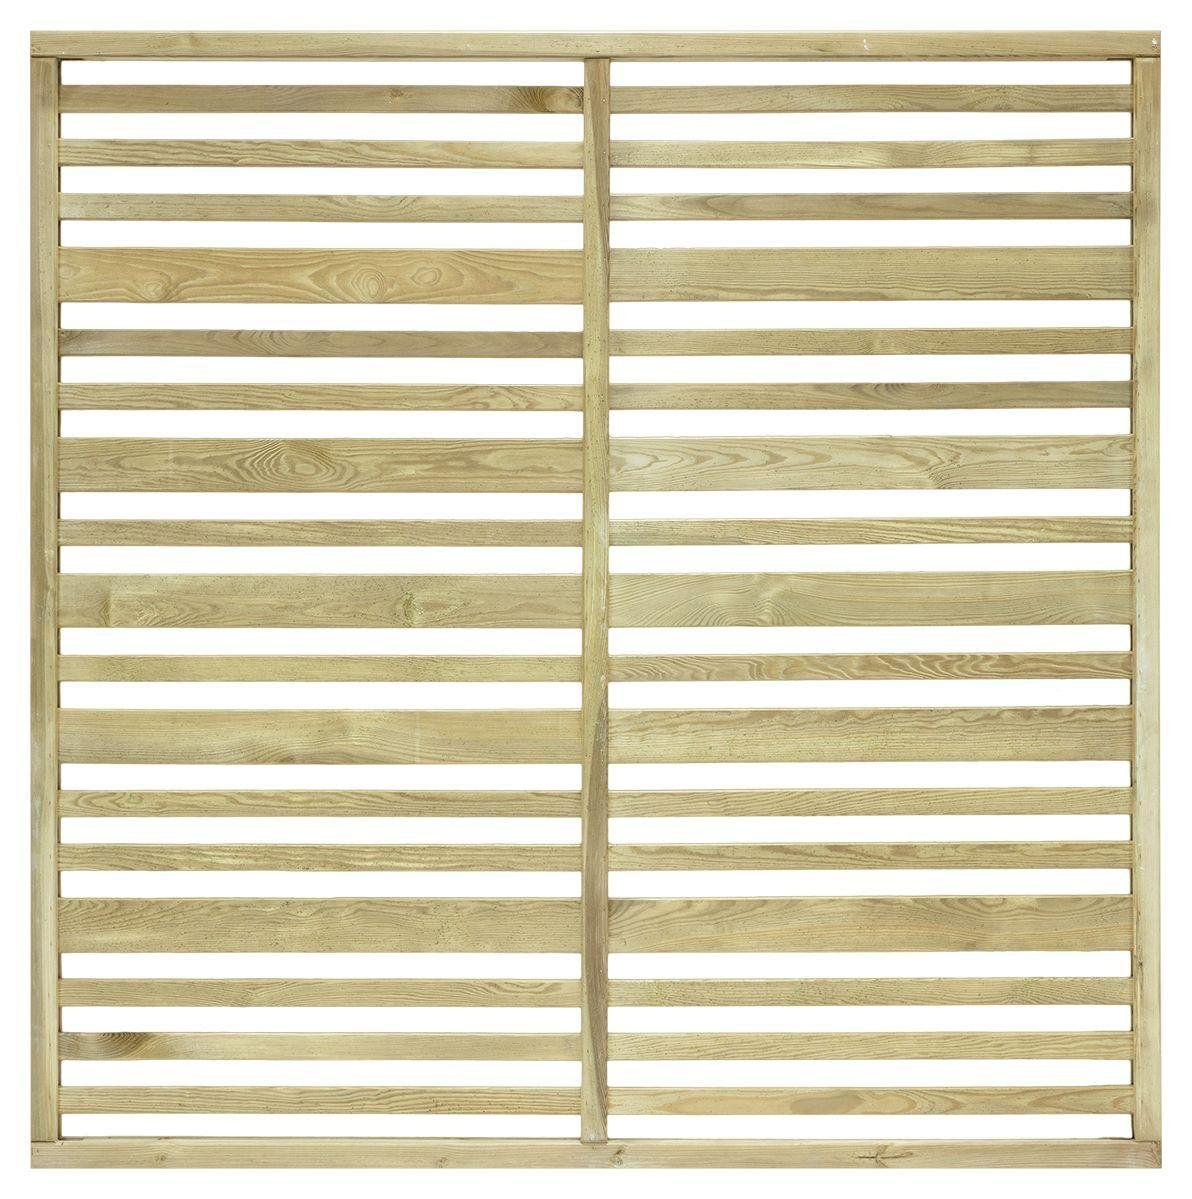 Grange Fencing 1.8m Urban Garden Screen Panel - Pack of 3. lowest price